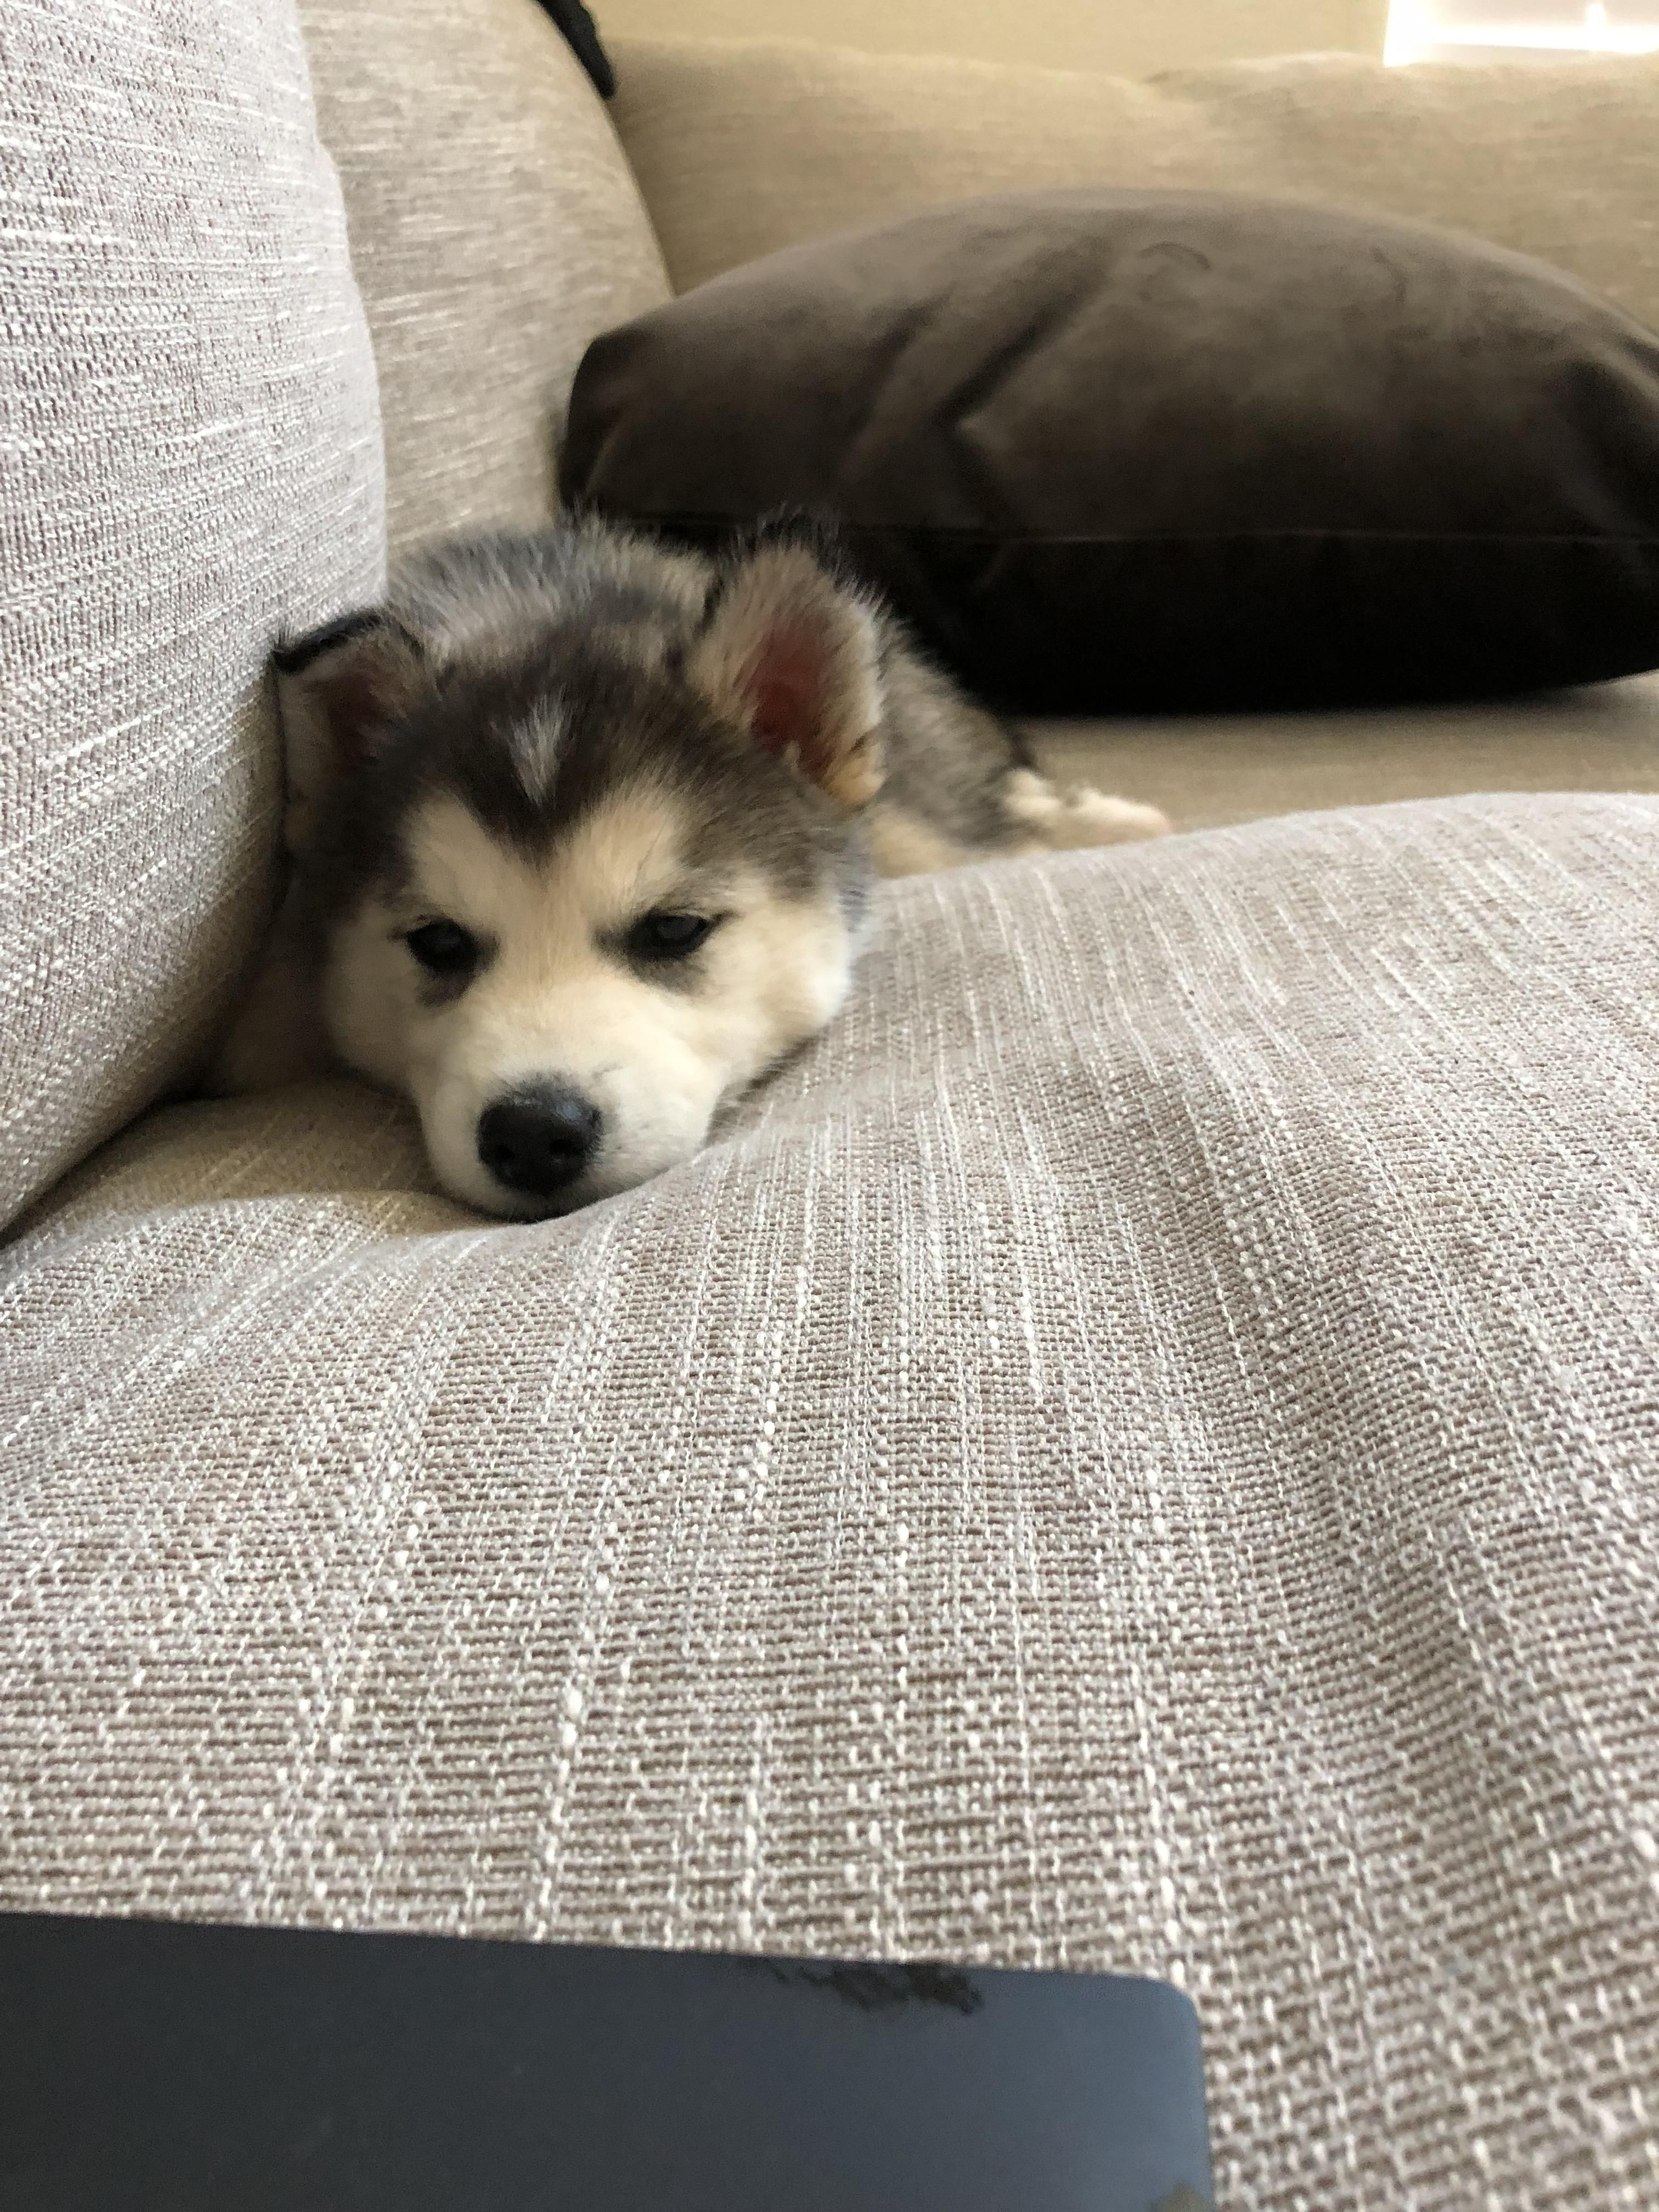 Do You Guys Think My New Puppies Right Ear Will Stand Up Like The